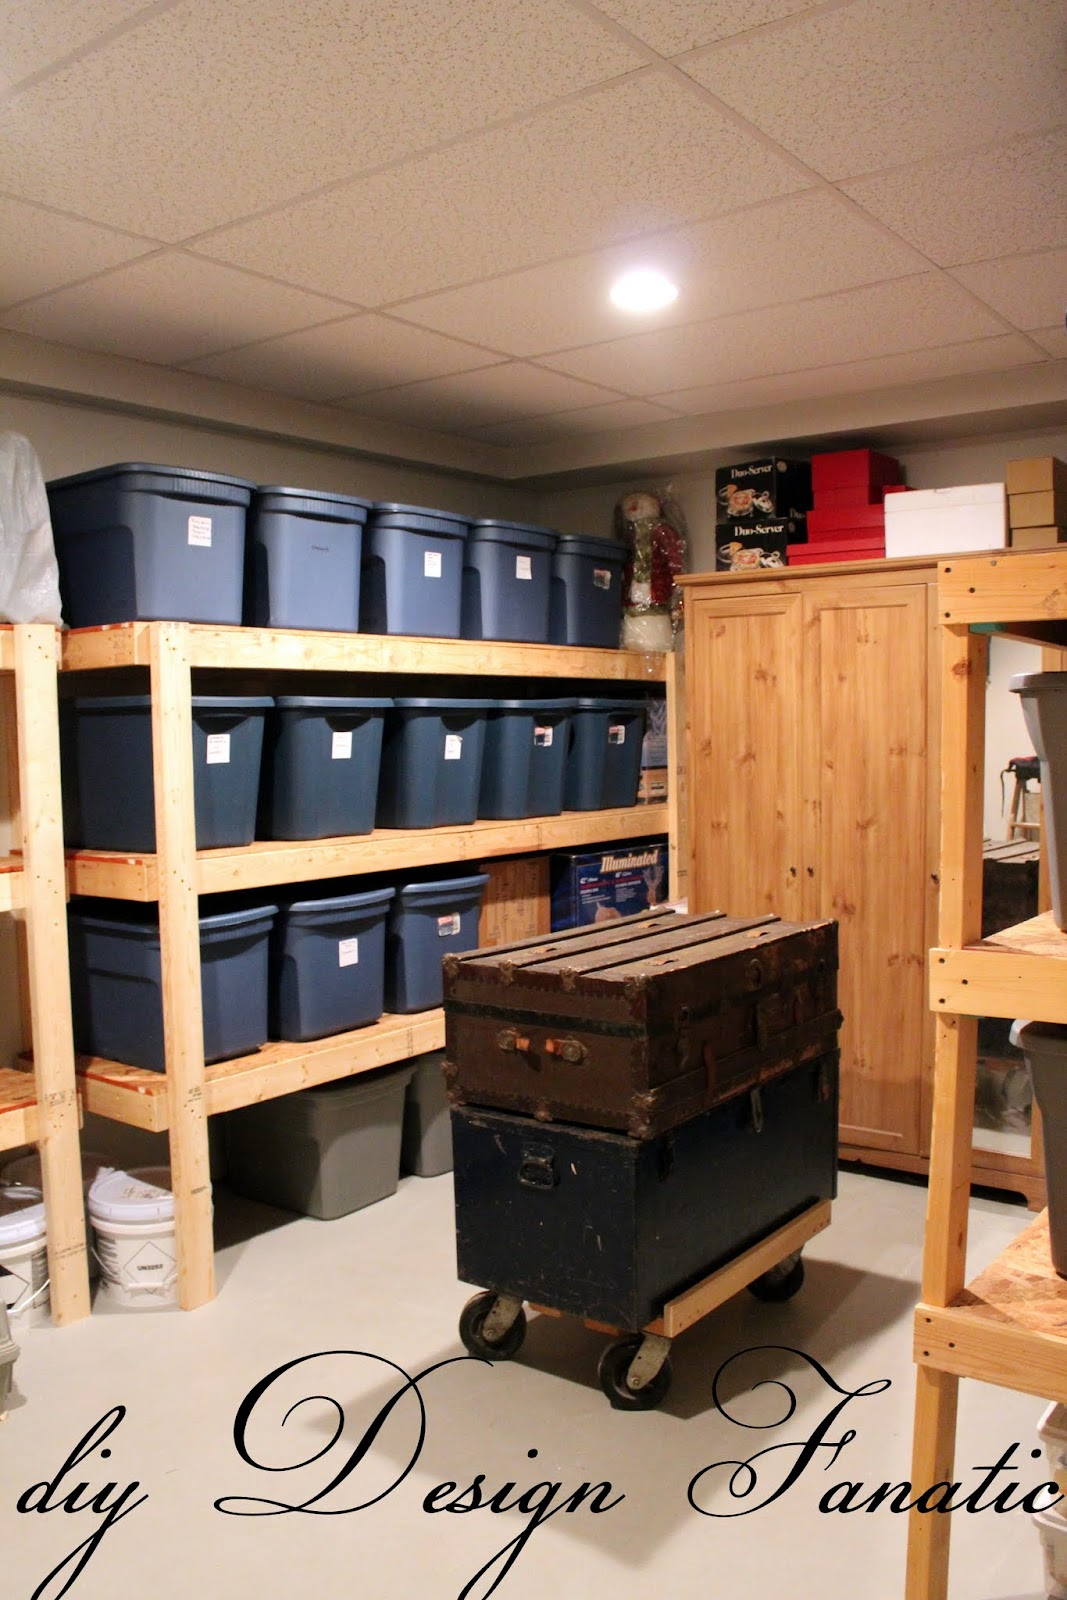 Diy design fanatic diy storage how to store your stuff Store room design ideas